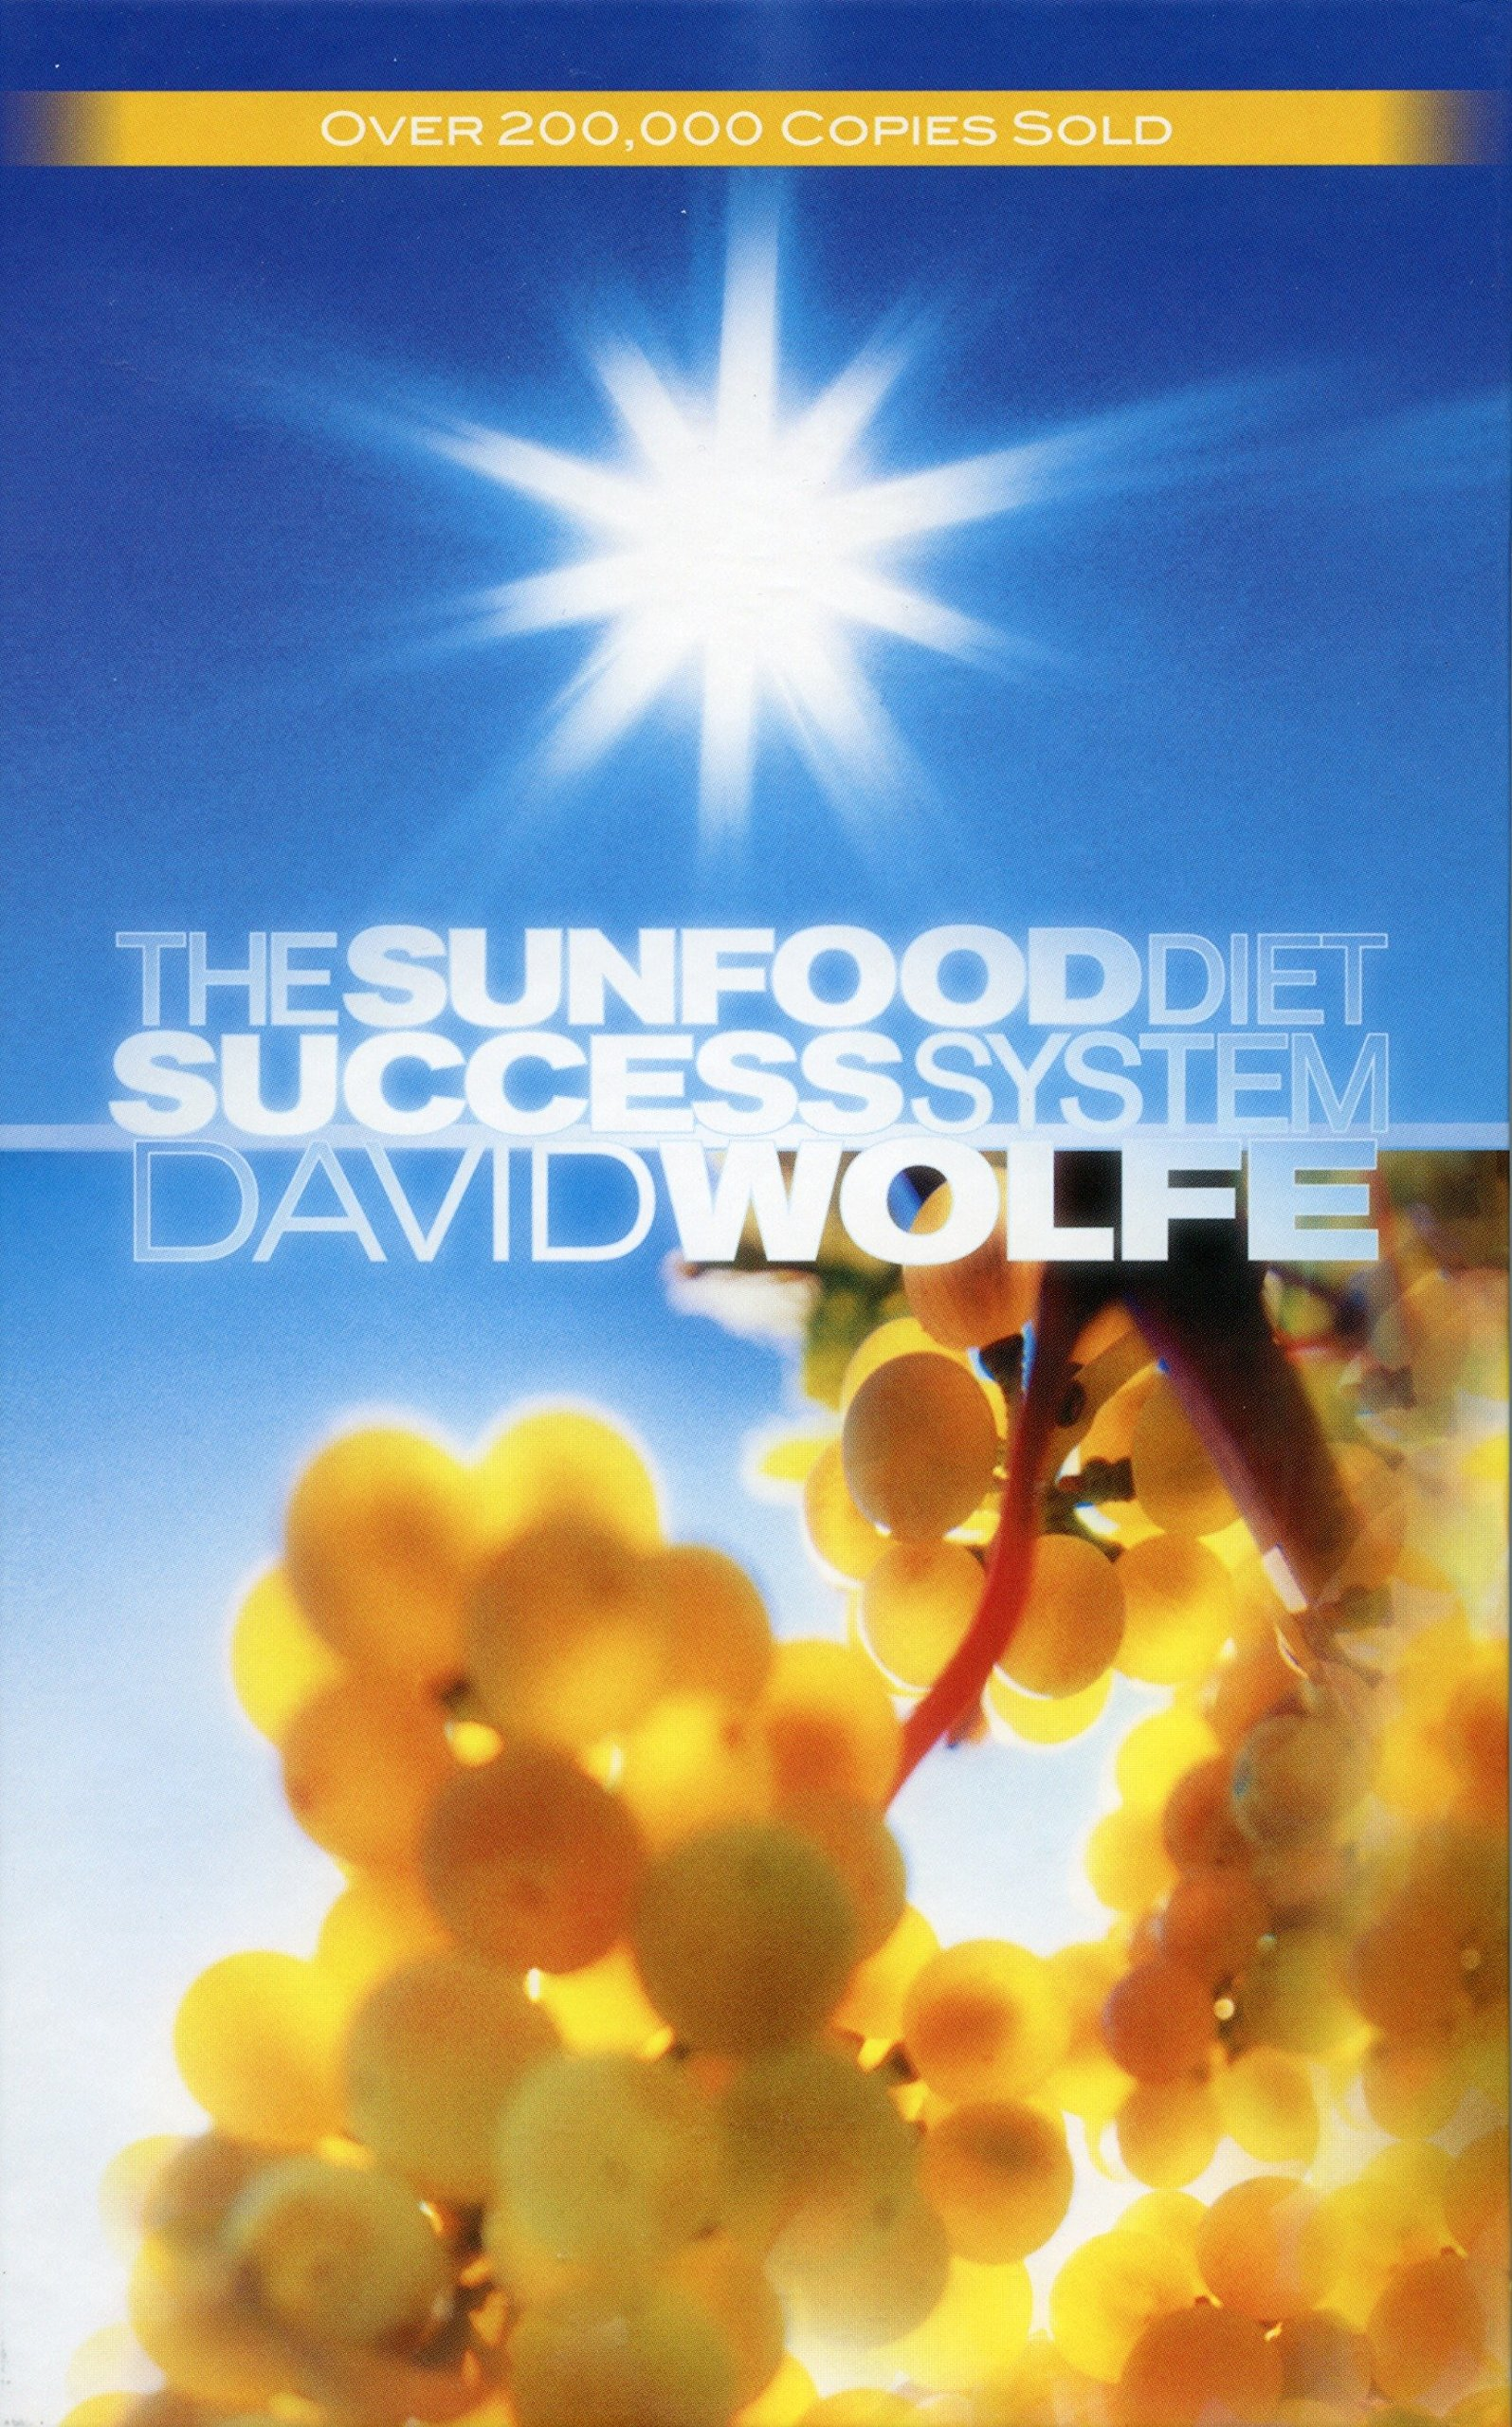 the sunfood diet success system - by David WolfeSince its first publication, The Sunfood Diet Success System has been the definitive book on the raw food lifestyle. Now after more than seven years, David Wolfe has rigorously rewritten the entire book, beginning to end, in order to offer the most complete, up-to-date nutrition information possible. No where else will you find the kinds of empowering information and insight that is present on every page of this truly inspiring work.The Sunfood Diet Success System is a groundbreaking book in the field of raw-food nutrition. The book describes exactly how to adopt, maintain, and stay centered on an 80, 90, or 100% raw-food diet by balancing different types of foods through David Wolfe's innovative Sunfood Triangle. Success is inevitable with day-by-day menu plans, delicious recipes, and the best information available on detoxification, fasting, mineralization and success technology all neatly bundled into one book.Each chapter is filled with inspiring quotes, facts, and tips.Dozens of beautiful, never-before-seen full-color images have been added to this brand-new edition, including many stunning Kirlian photographs. The Sunfood Diet Success System also includes a comprehensive listing of raw-food restaurants, healing retreats, and organizations. Be prepared for nothing less than total transformation!